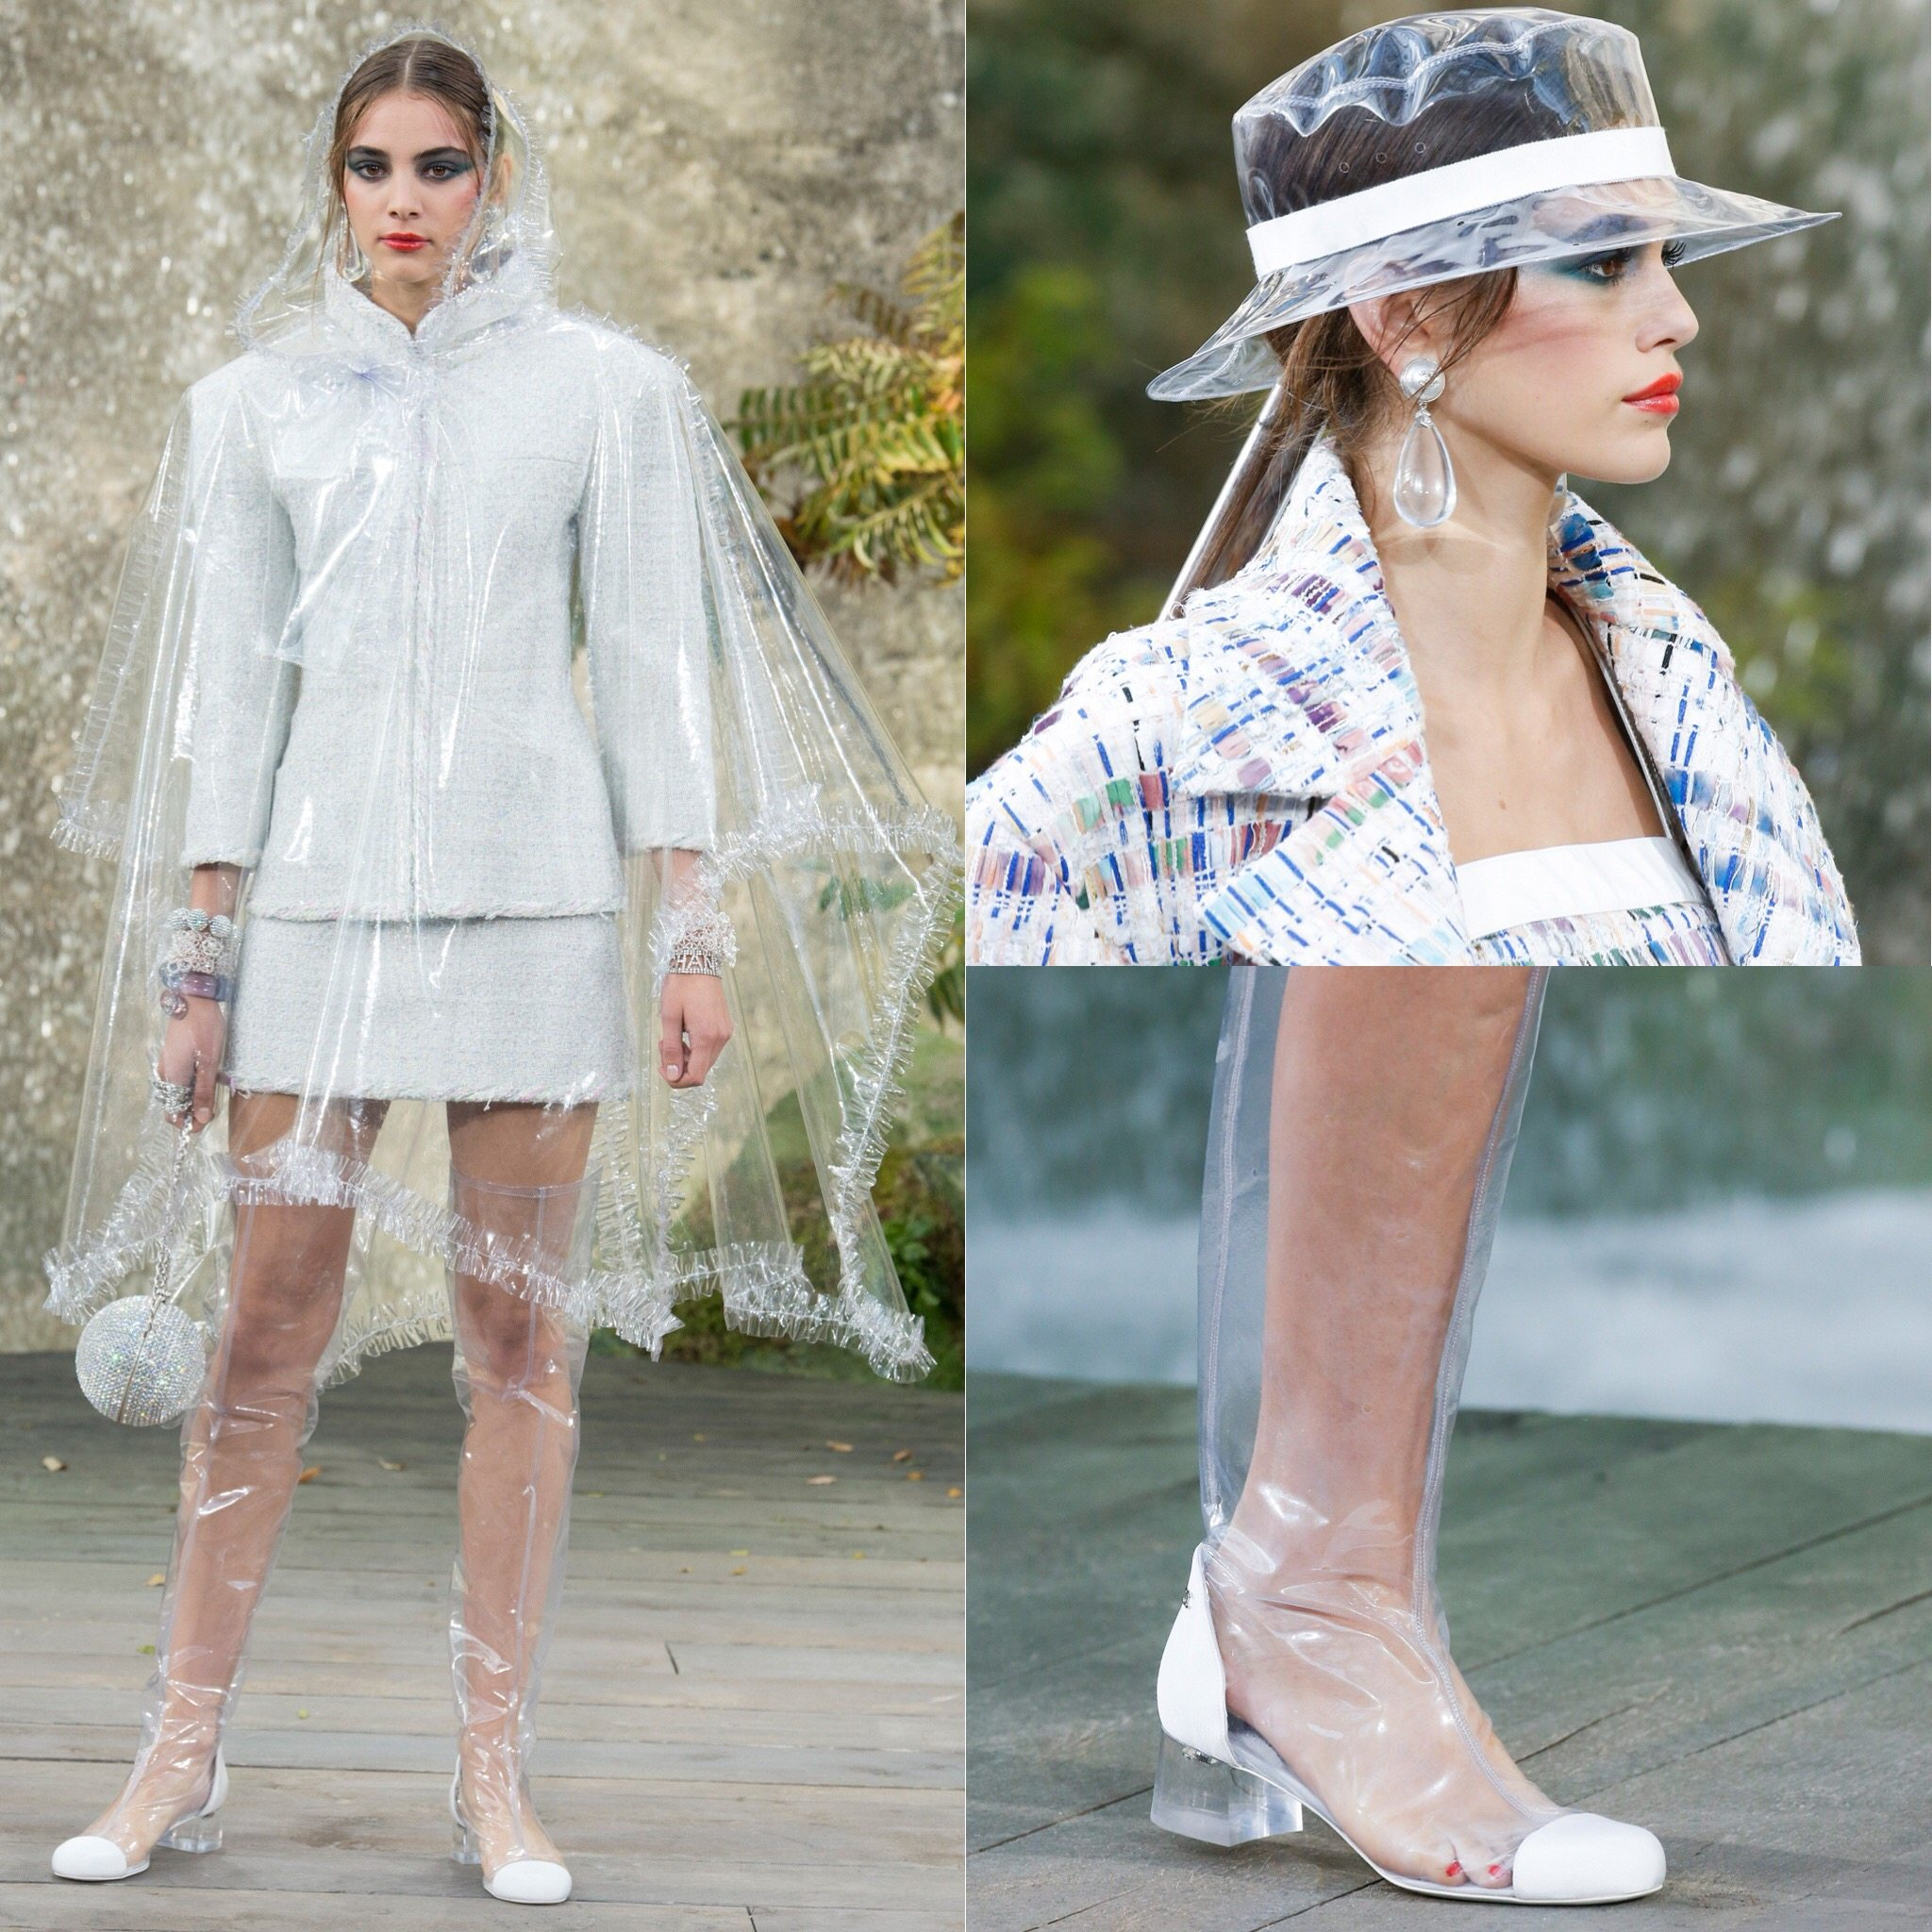 Spring 2018 Trends: Fashion Week coverage - Life in plastic is fantastic: Chanel runway using plastic boots, plastic coat and hat, Mudler plexi heels and Balmain plastic boots. More on Houseofcomil.com